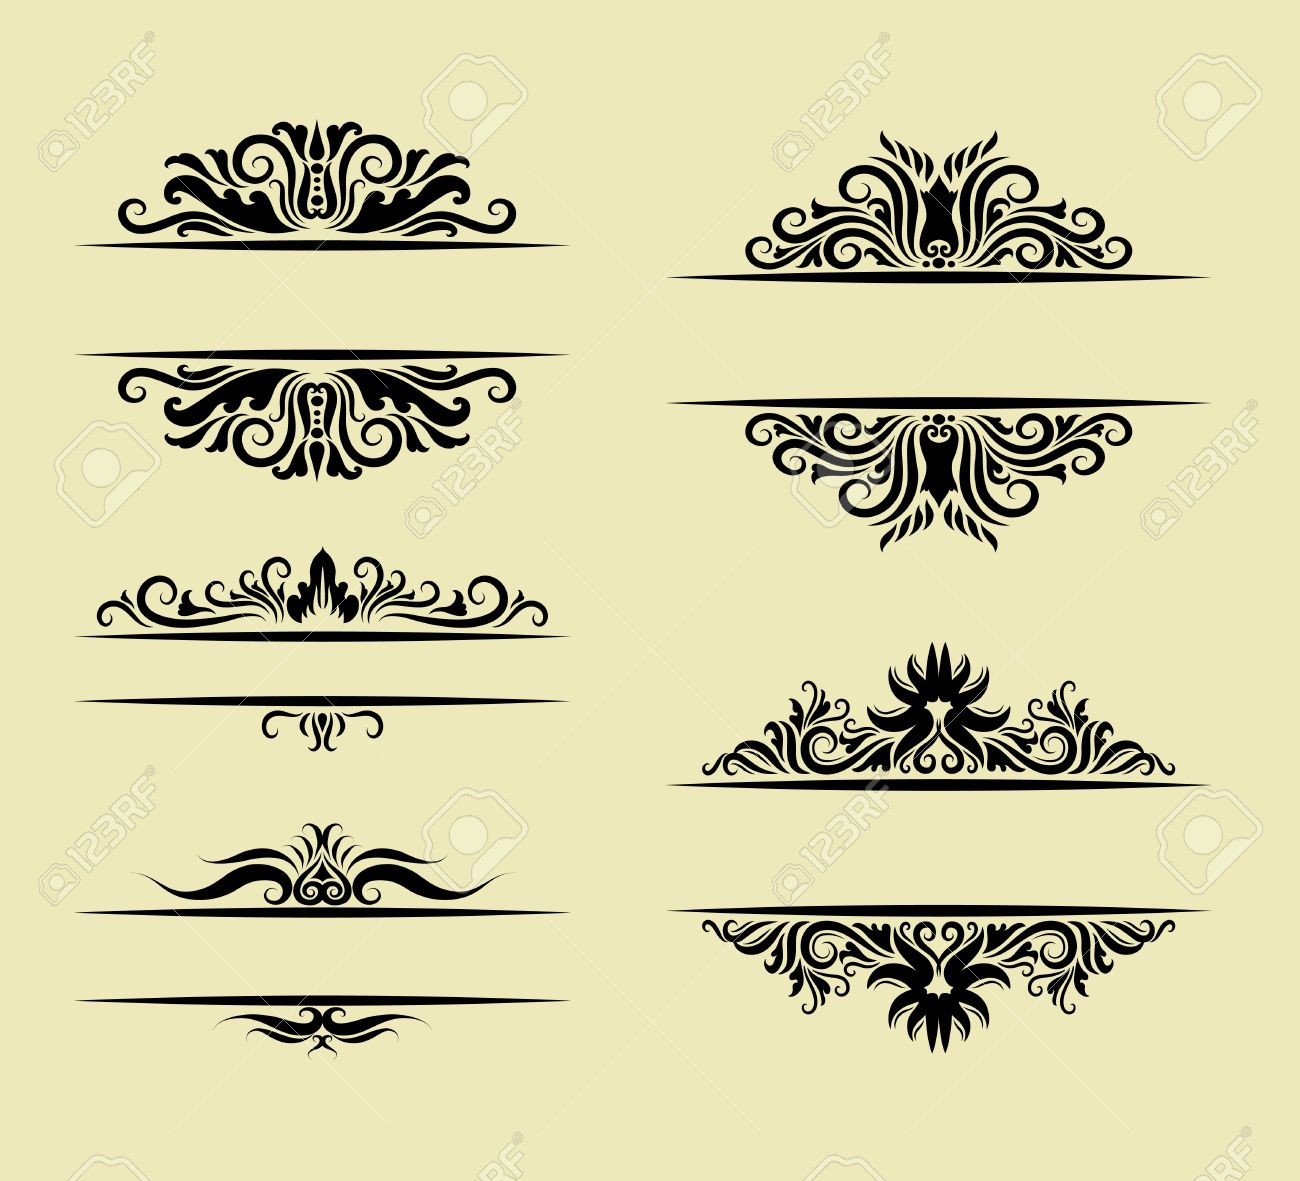 Floral ornament decoration use for label invitation element floral ornament decoration use for label invitation element ornament easy to use stock vector stopboris Choice Image